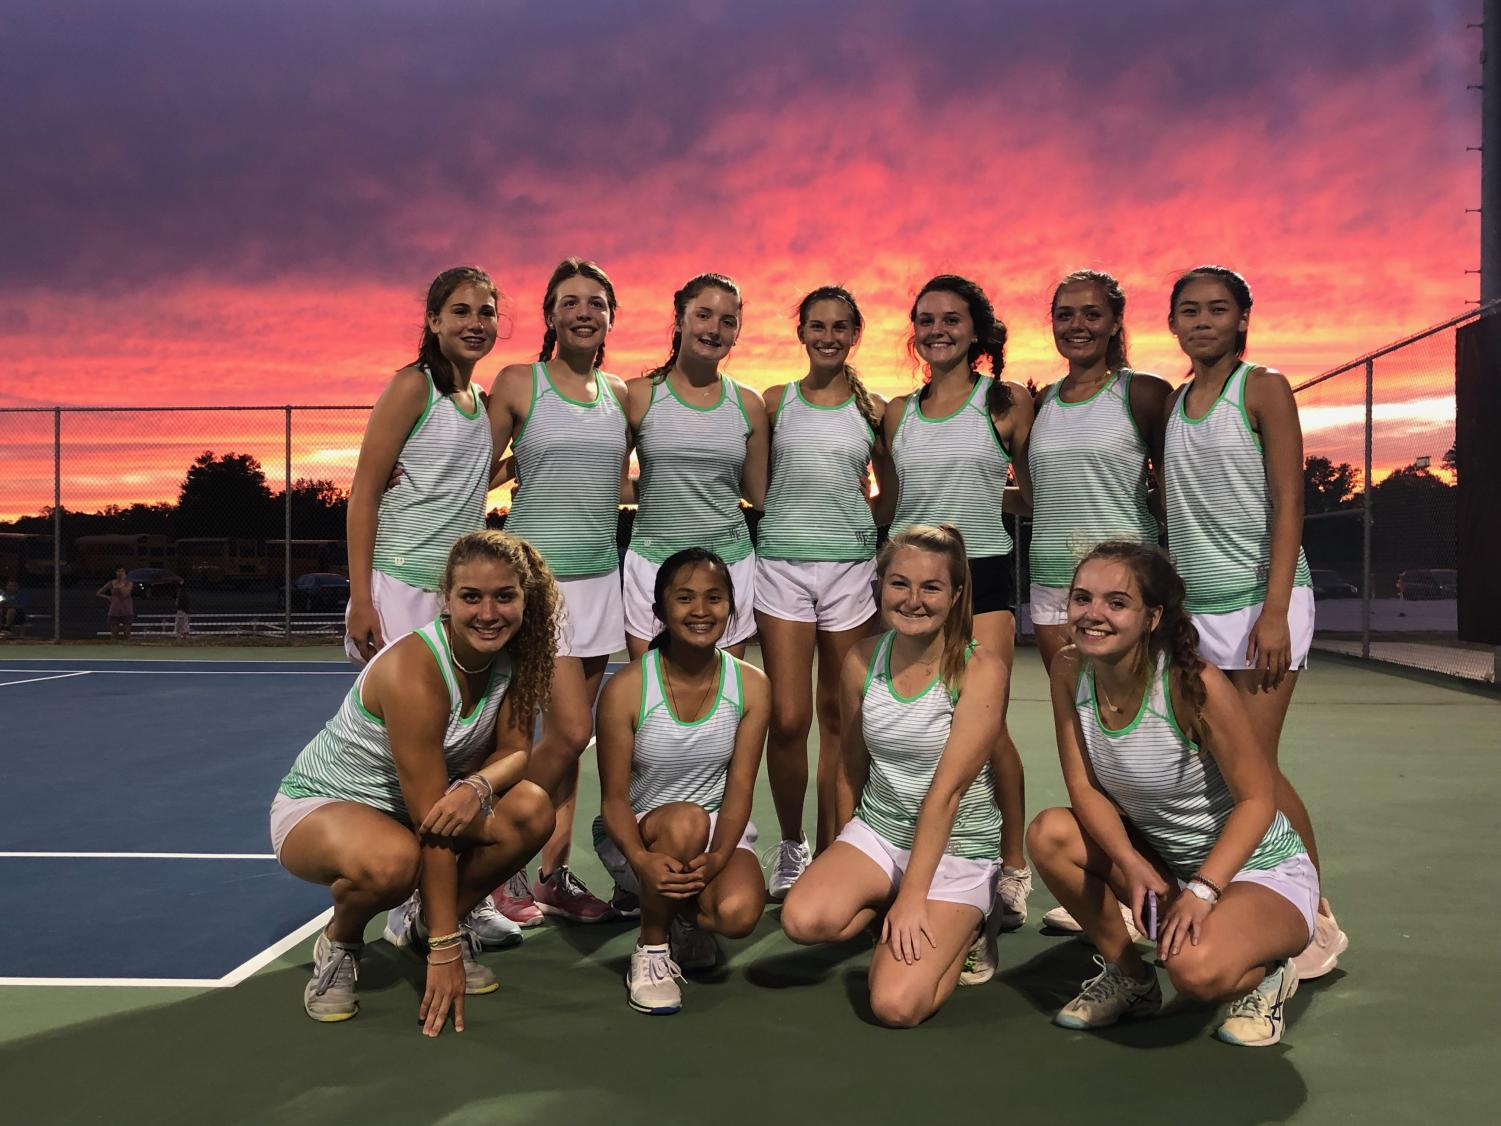 The girls' tennis team stands proud.  They have shined during their season this year.